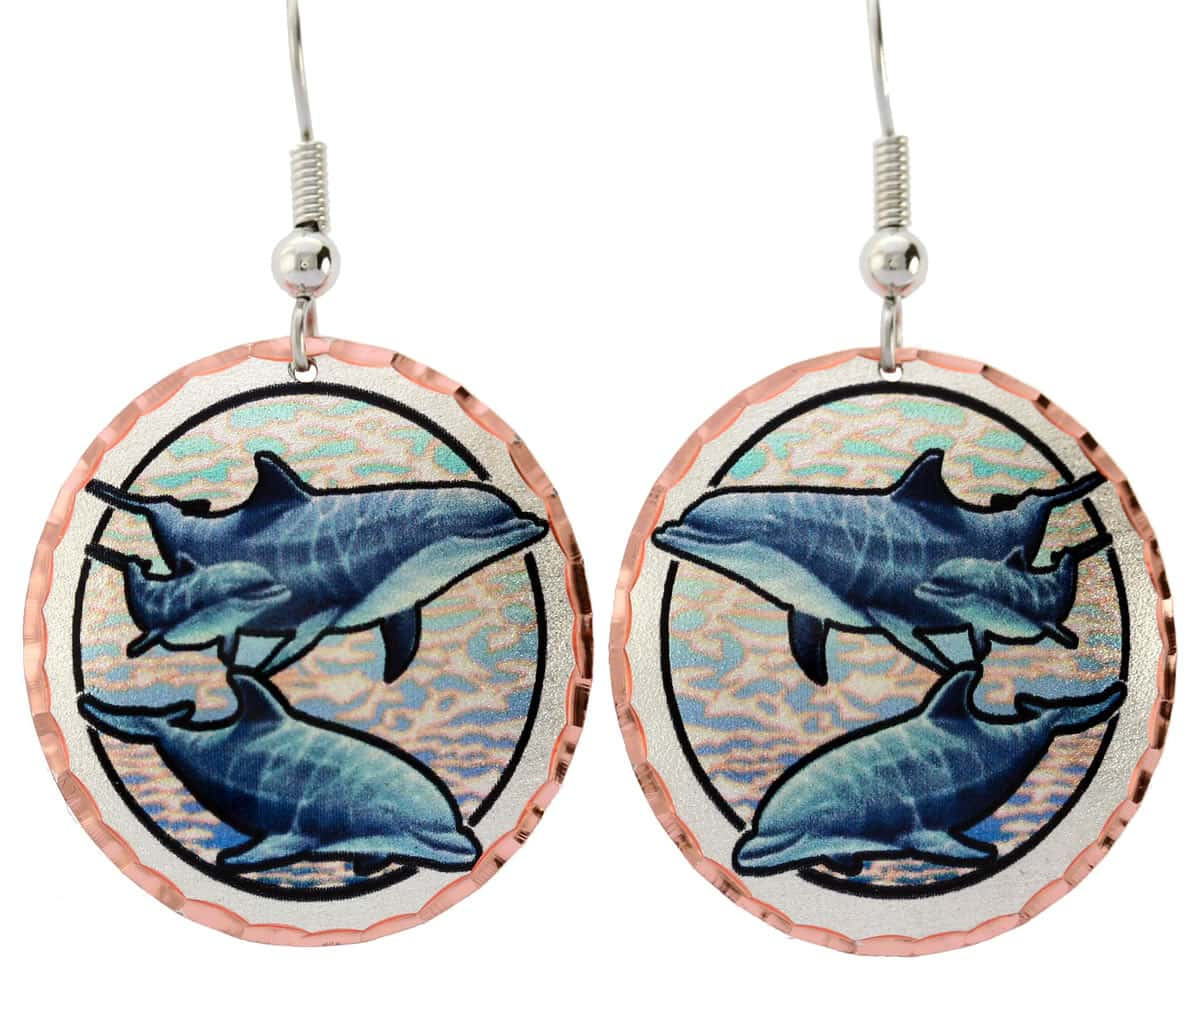 Colorful dolphin earrings for women who love ocean wildlife